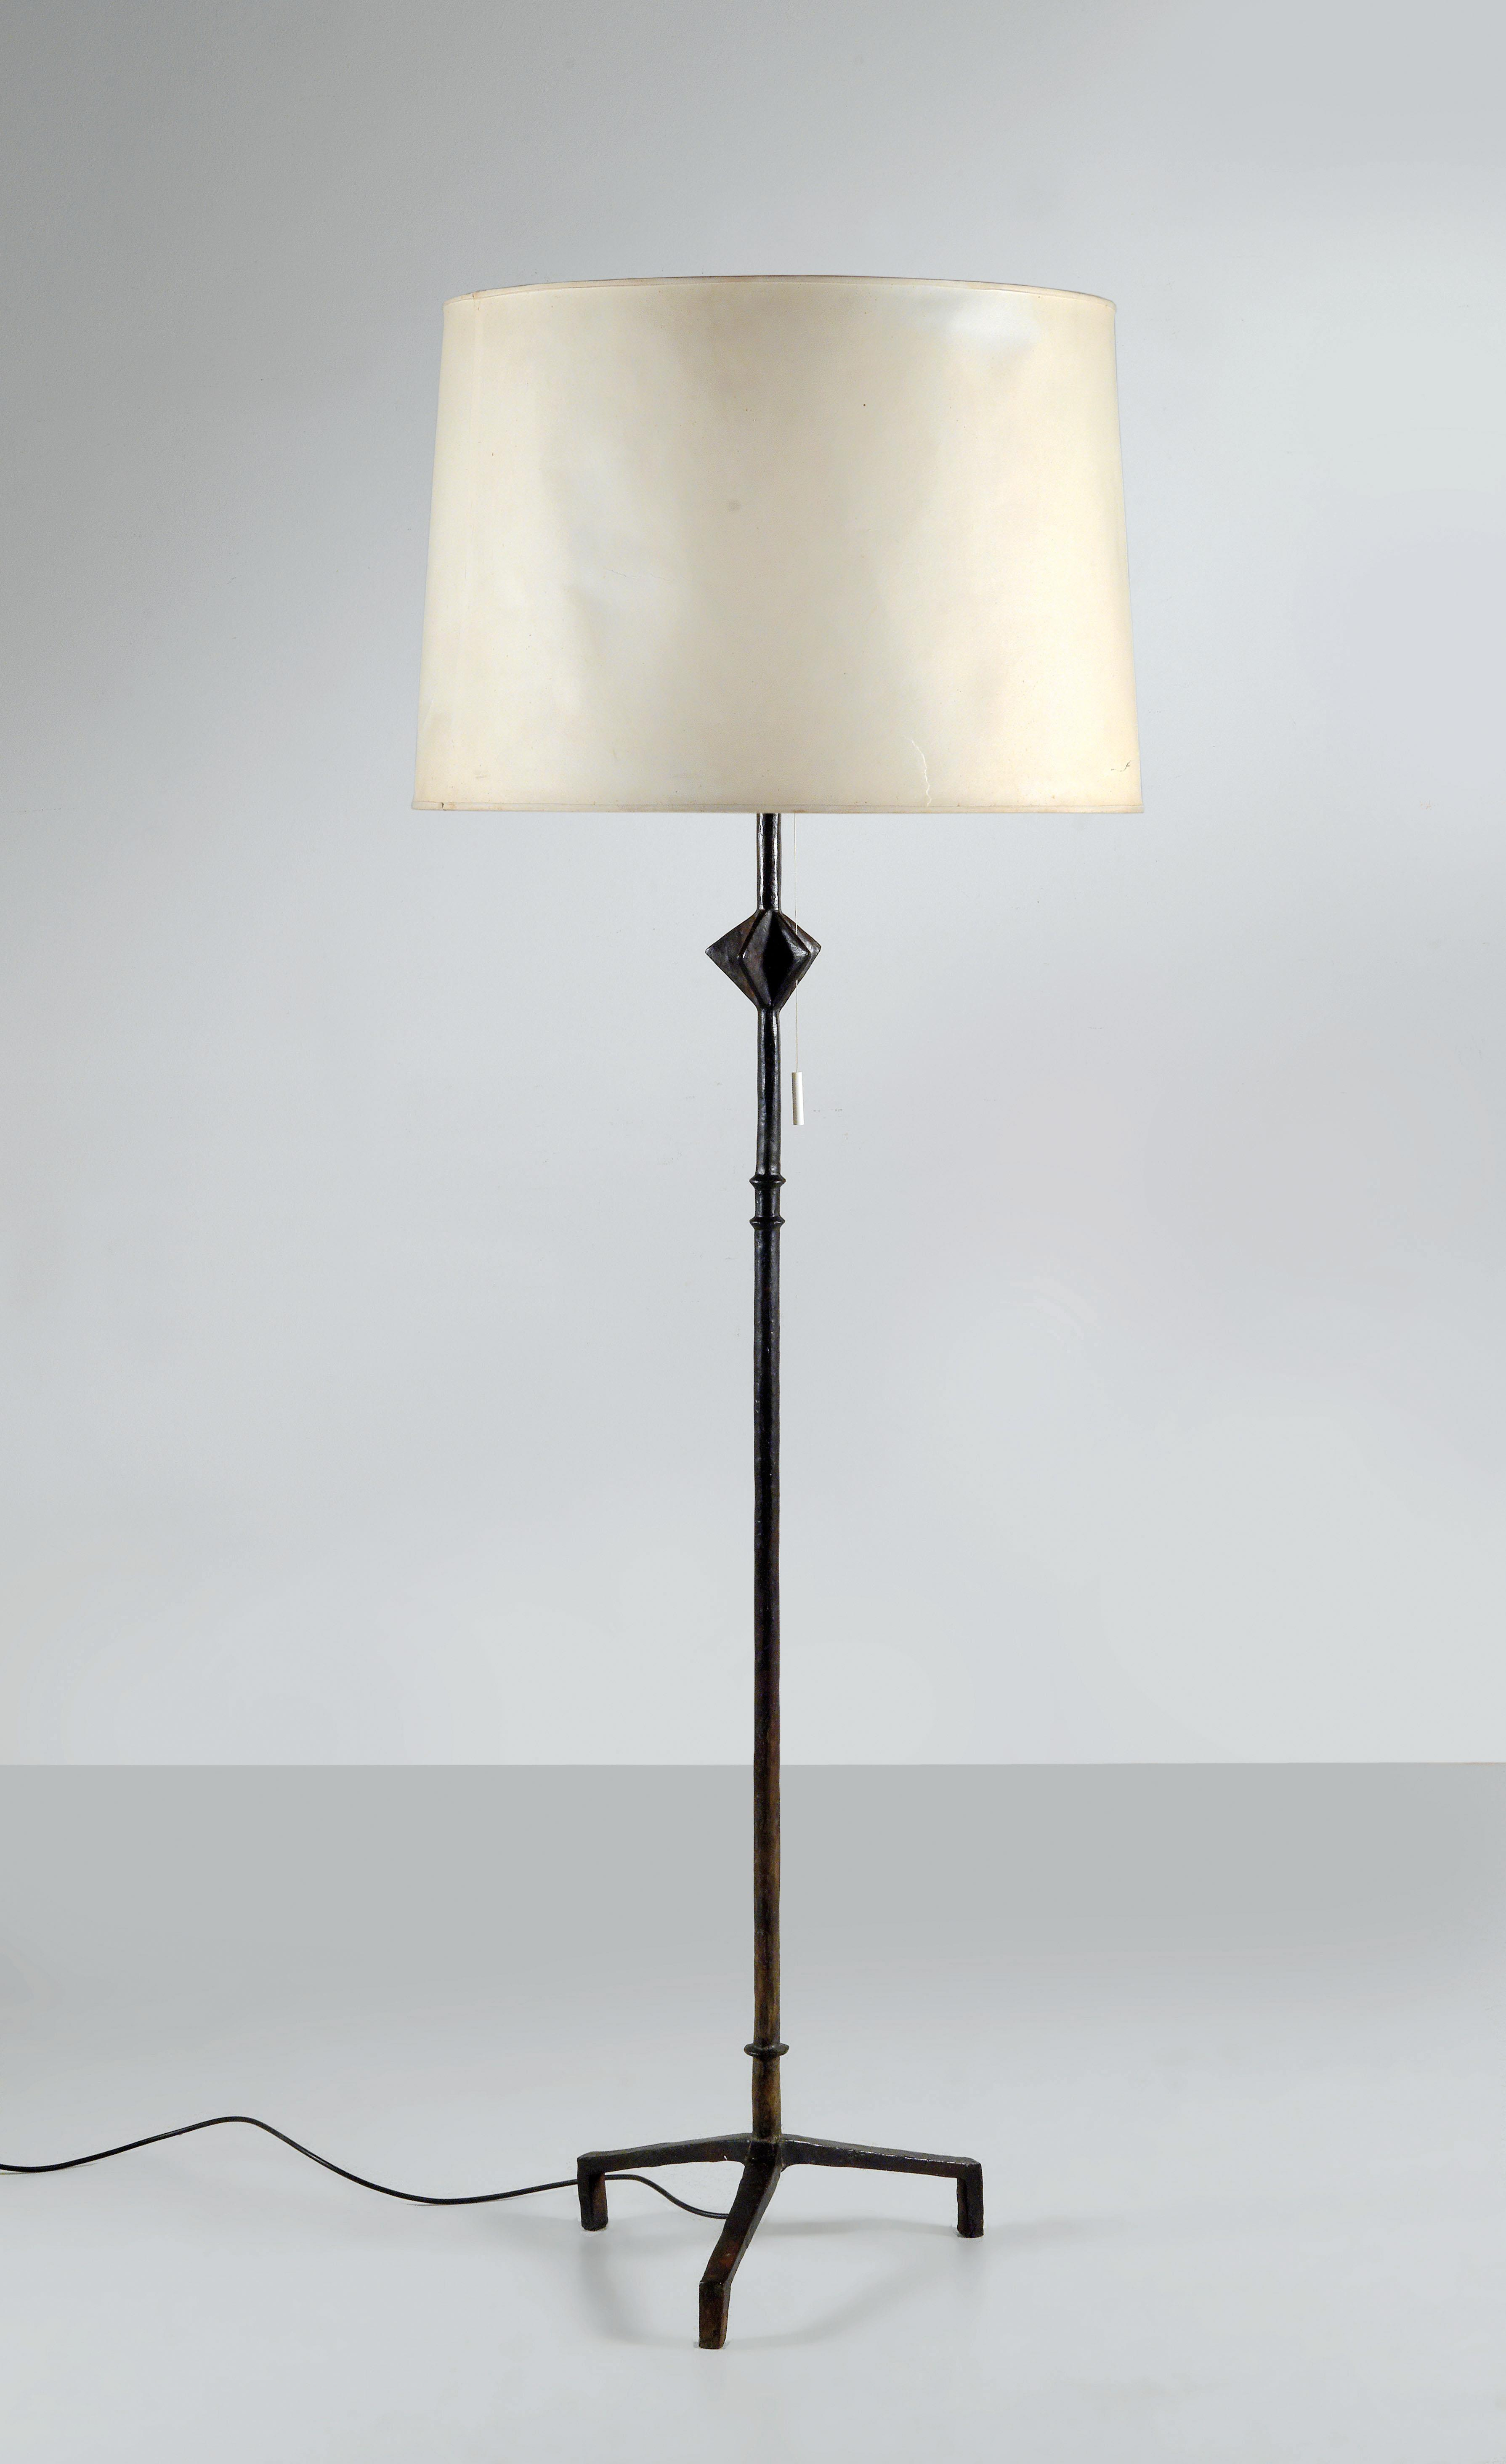 A Lampadaire